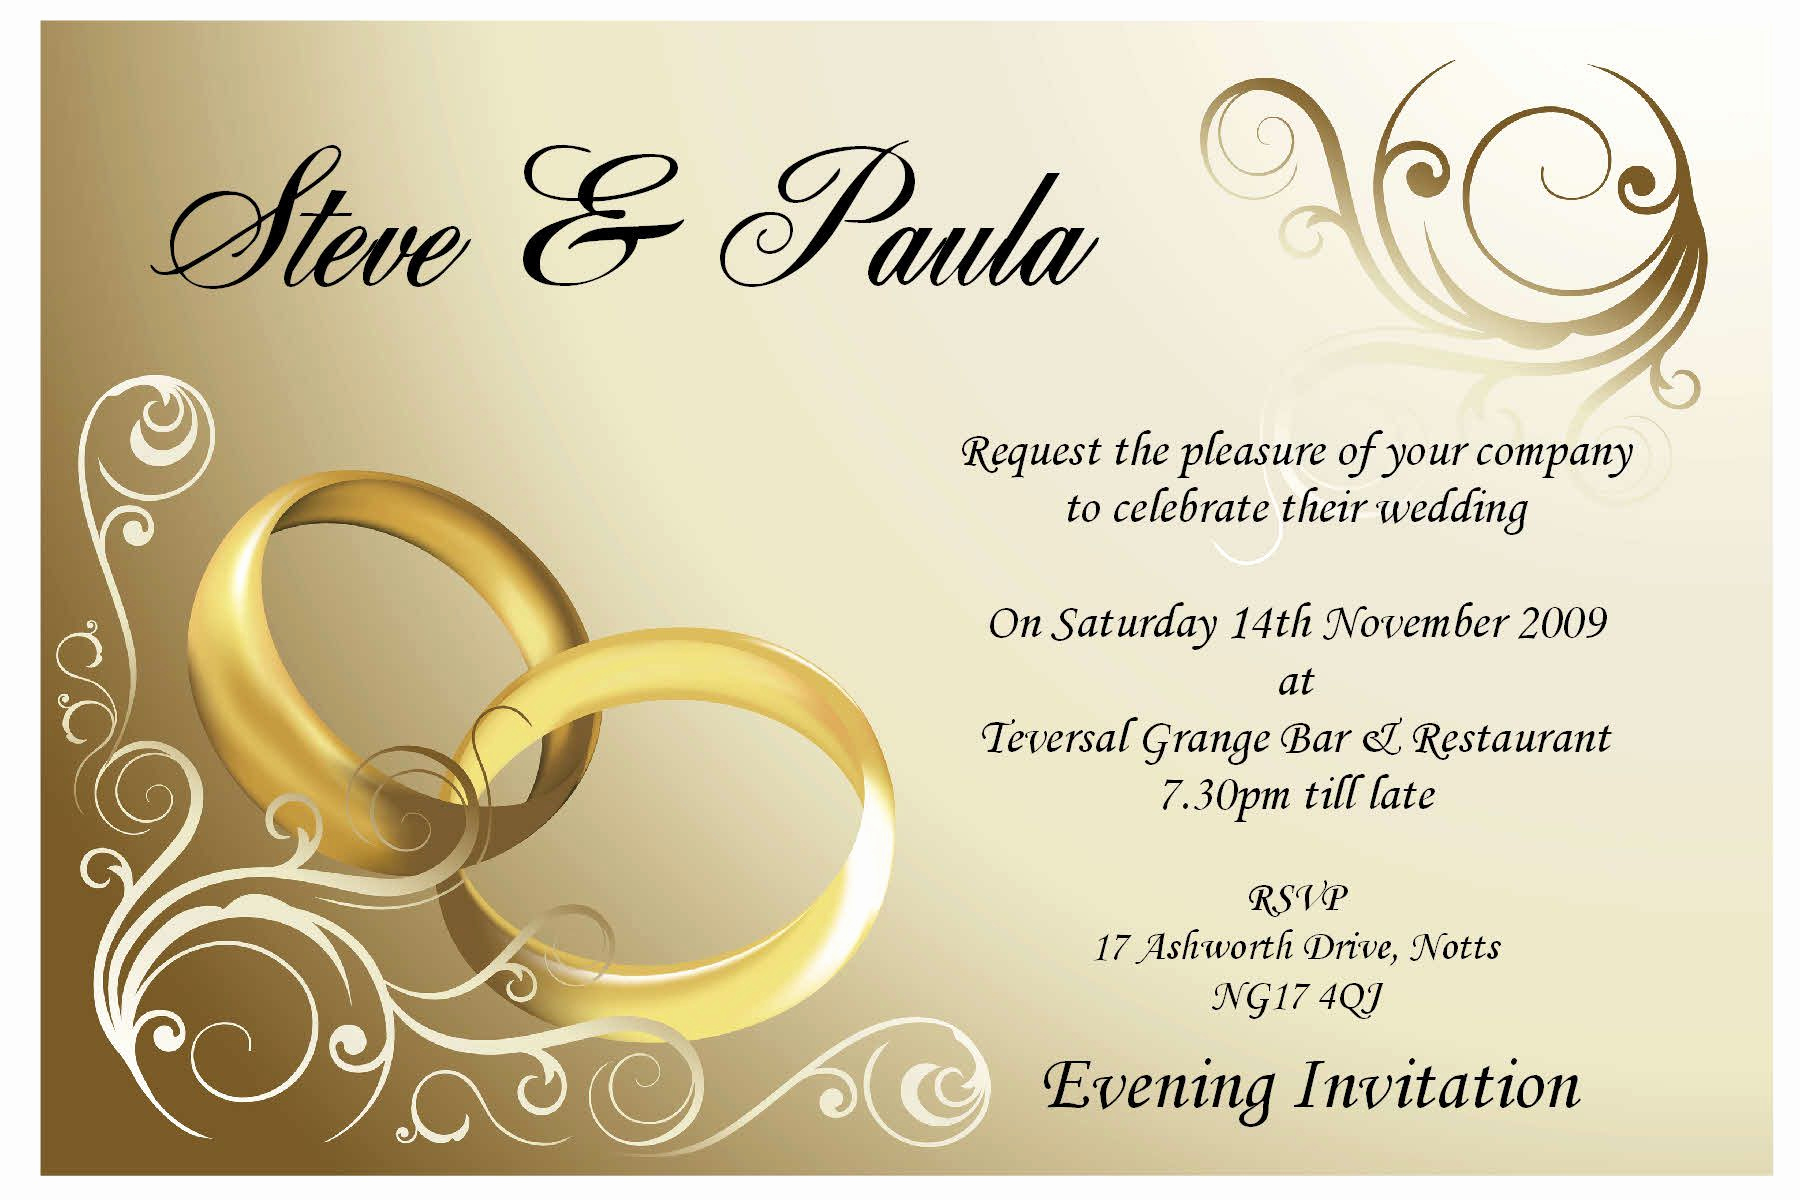 Wedding Invitation Design Templates Awesome Wedding Invitation Card Design Weddingcards